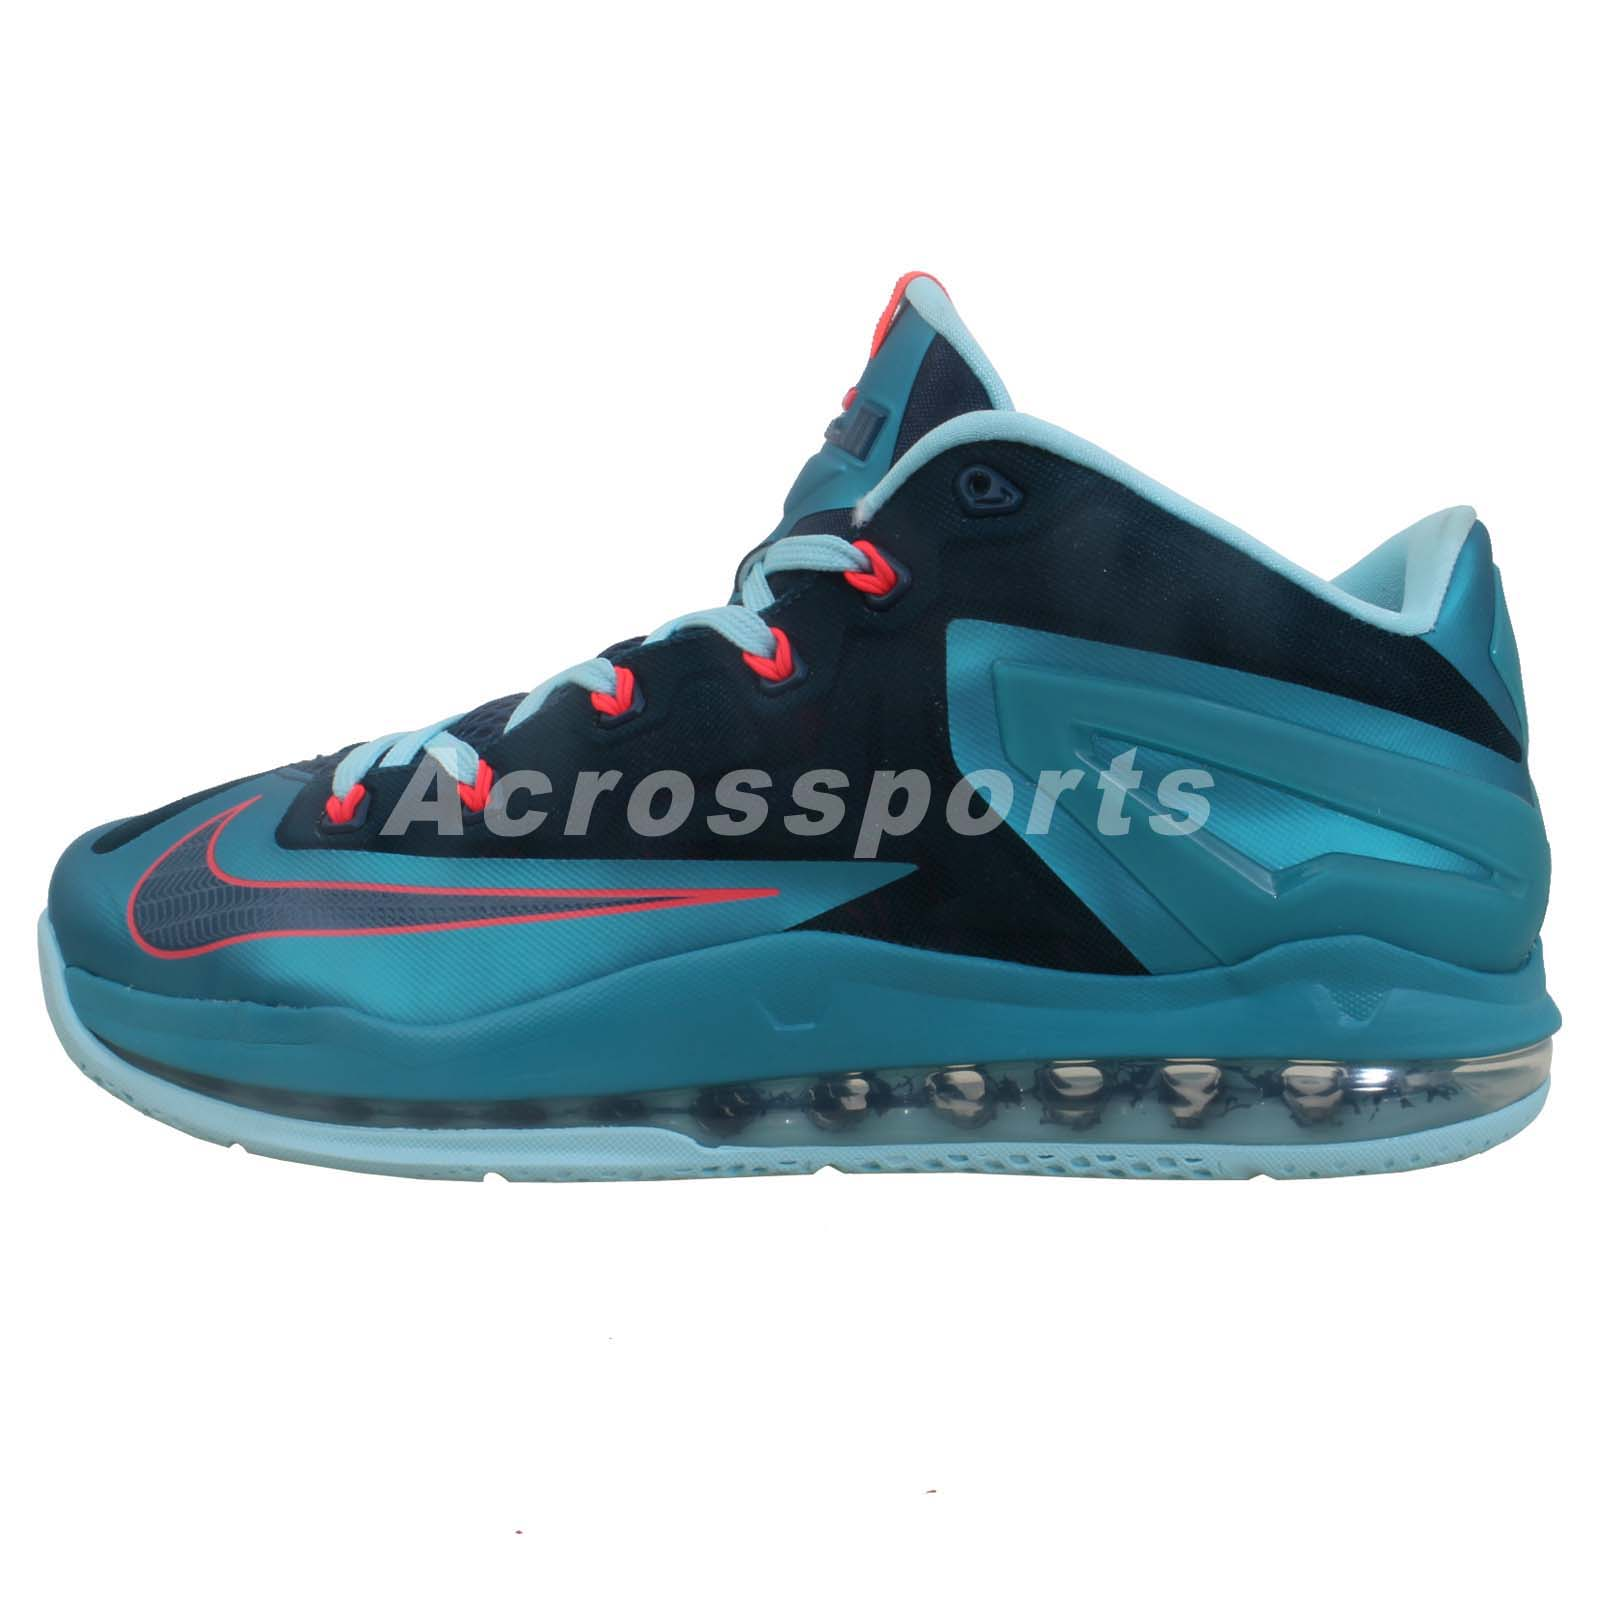 Lebron xi basketball shoes 28 images nike lebron xi 11 for Valentines jewelry dallas pa